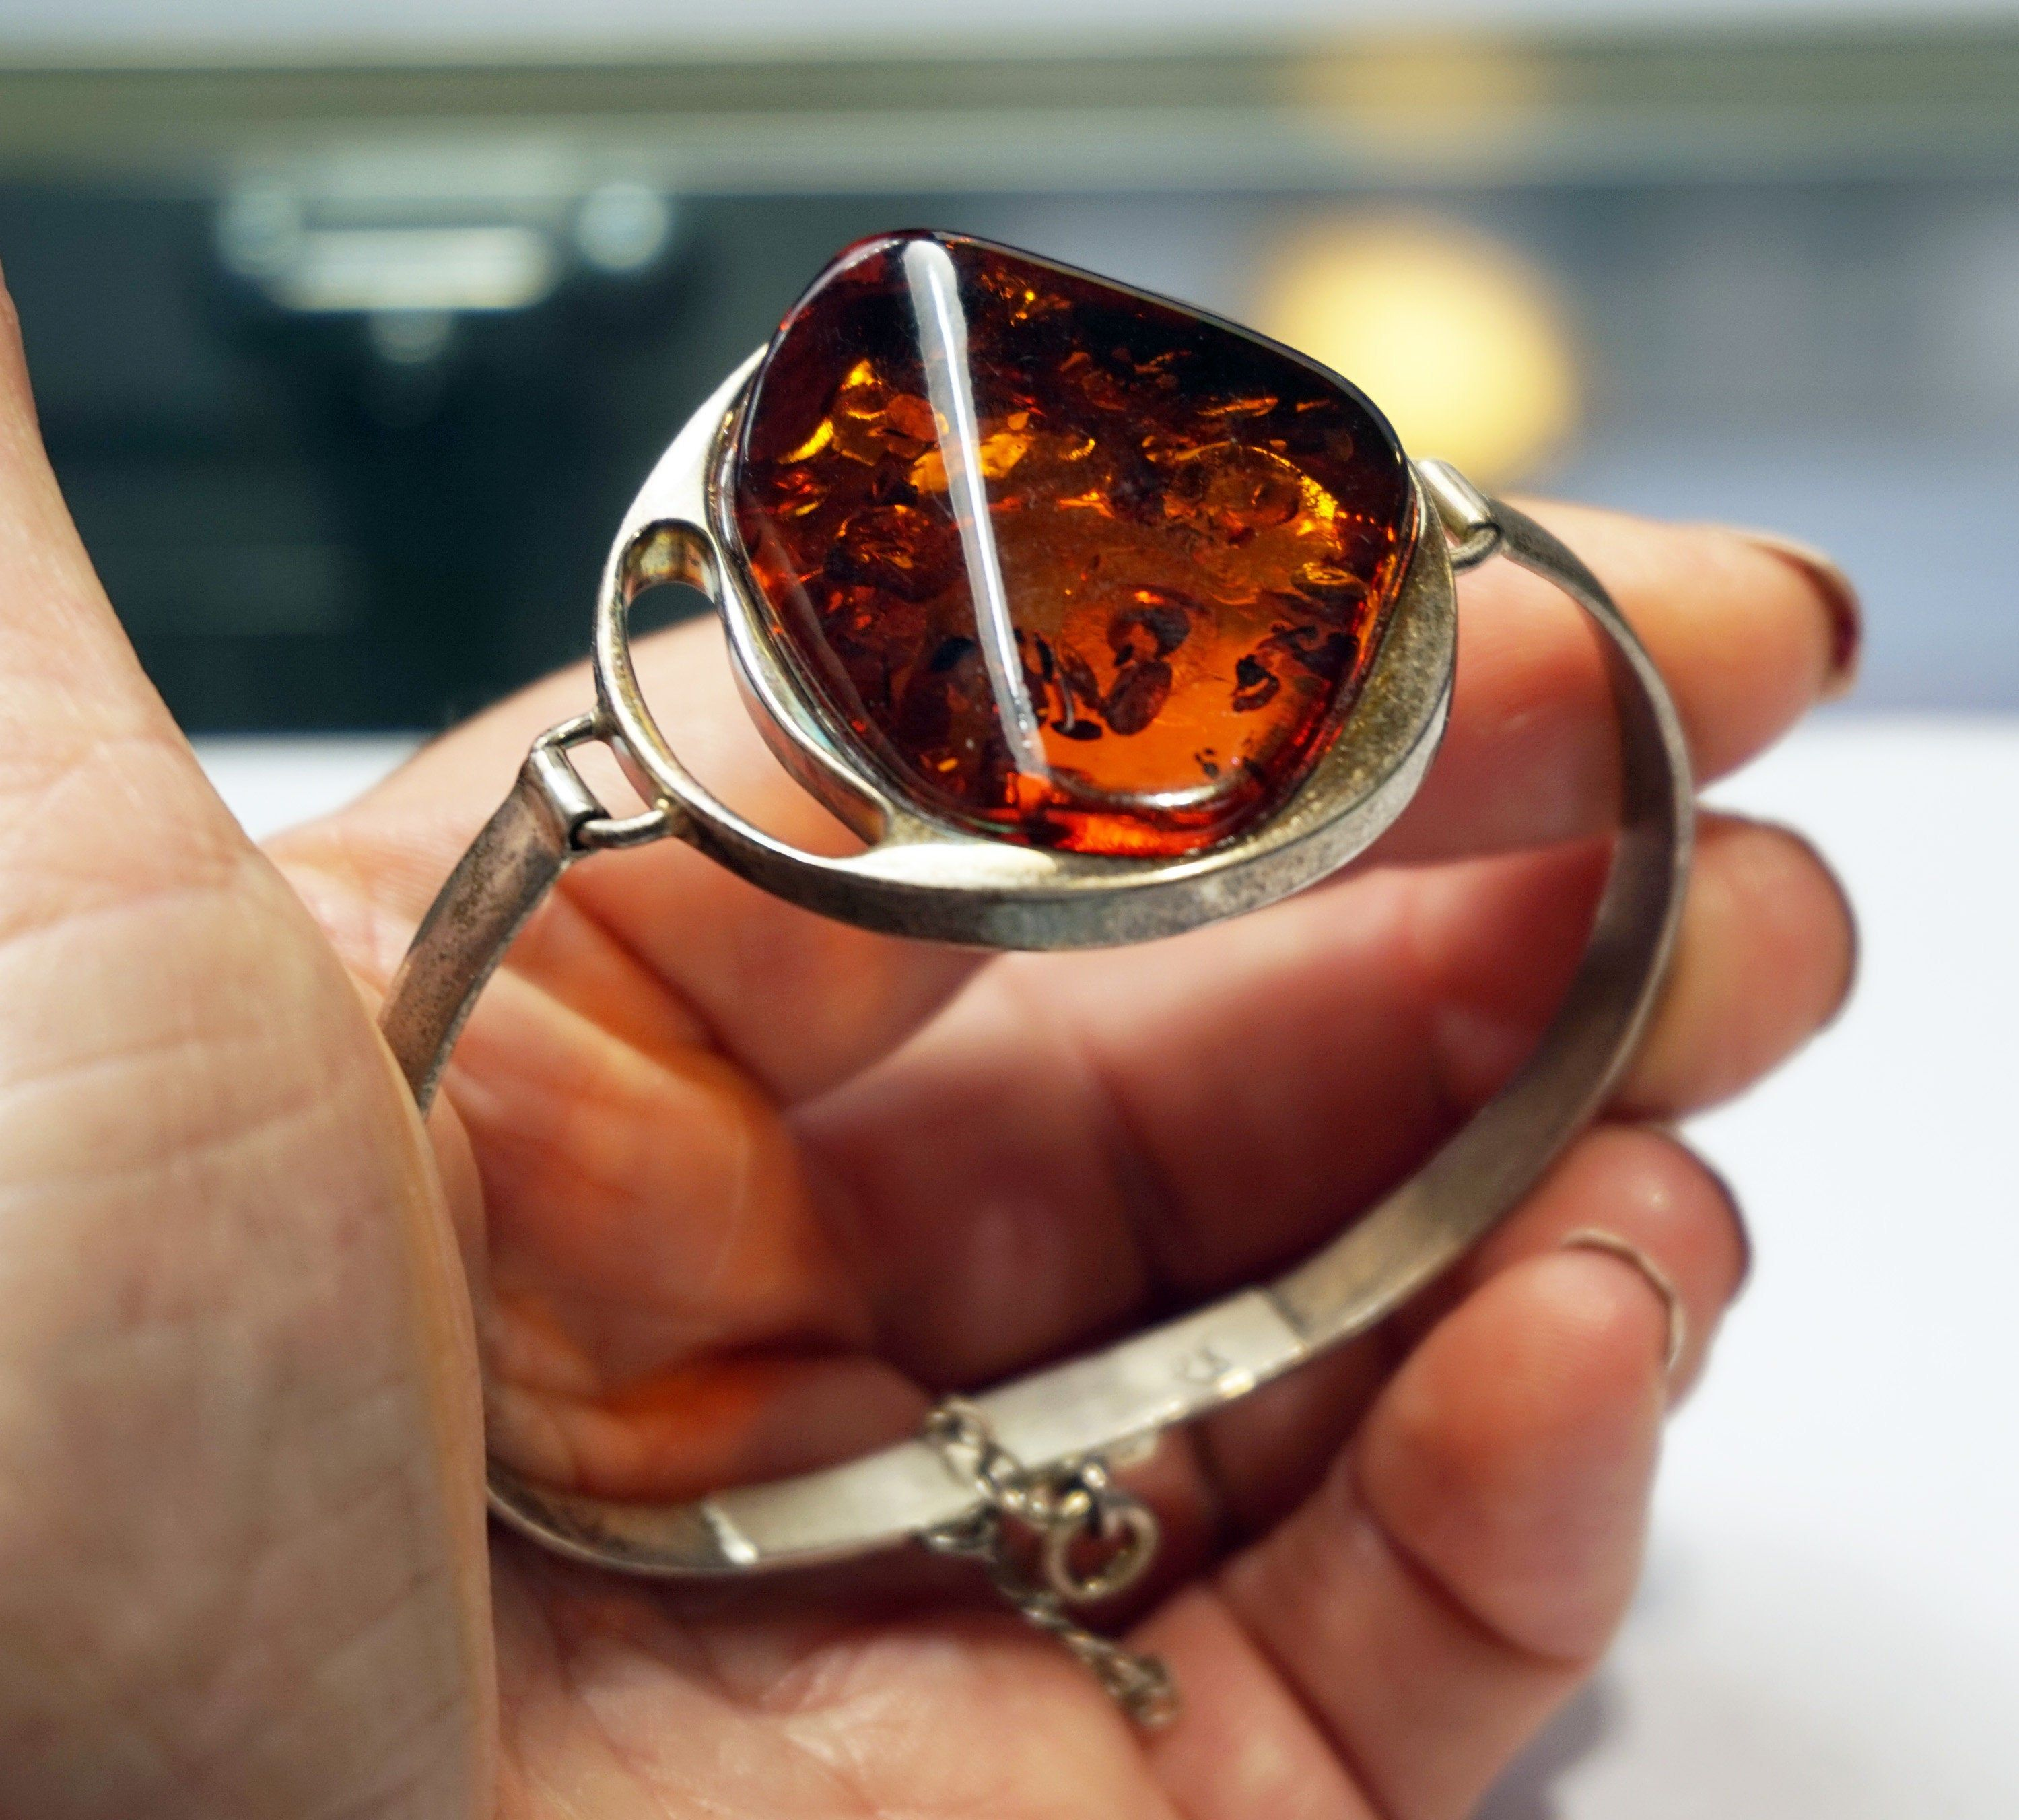 BALTIC AMBER SILVER Bracelet Big Cognac Amber Stone 925 Sterling Silver Bangle Bracelet 6.5 Unique Gift Ideas For Her Holiday Gift For Women